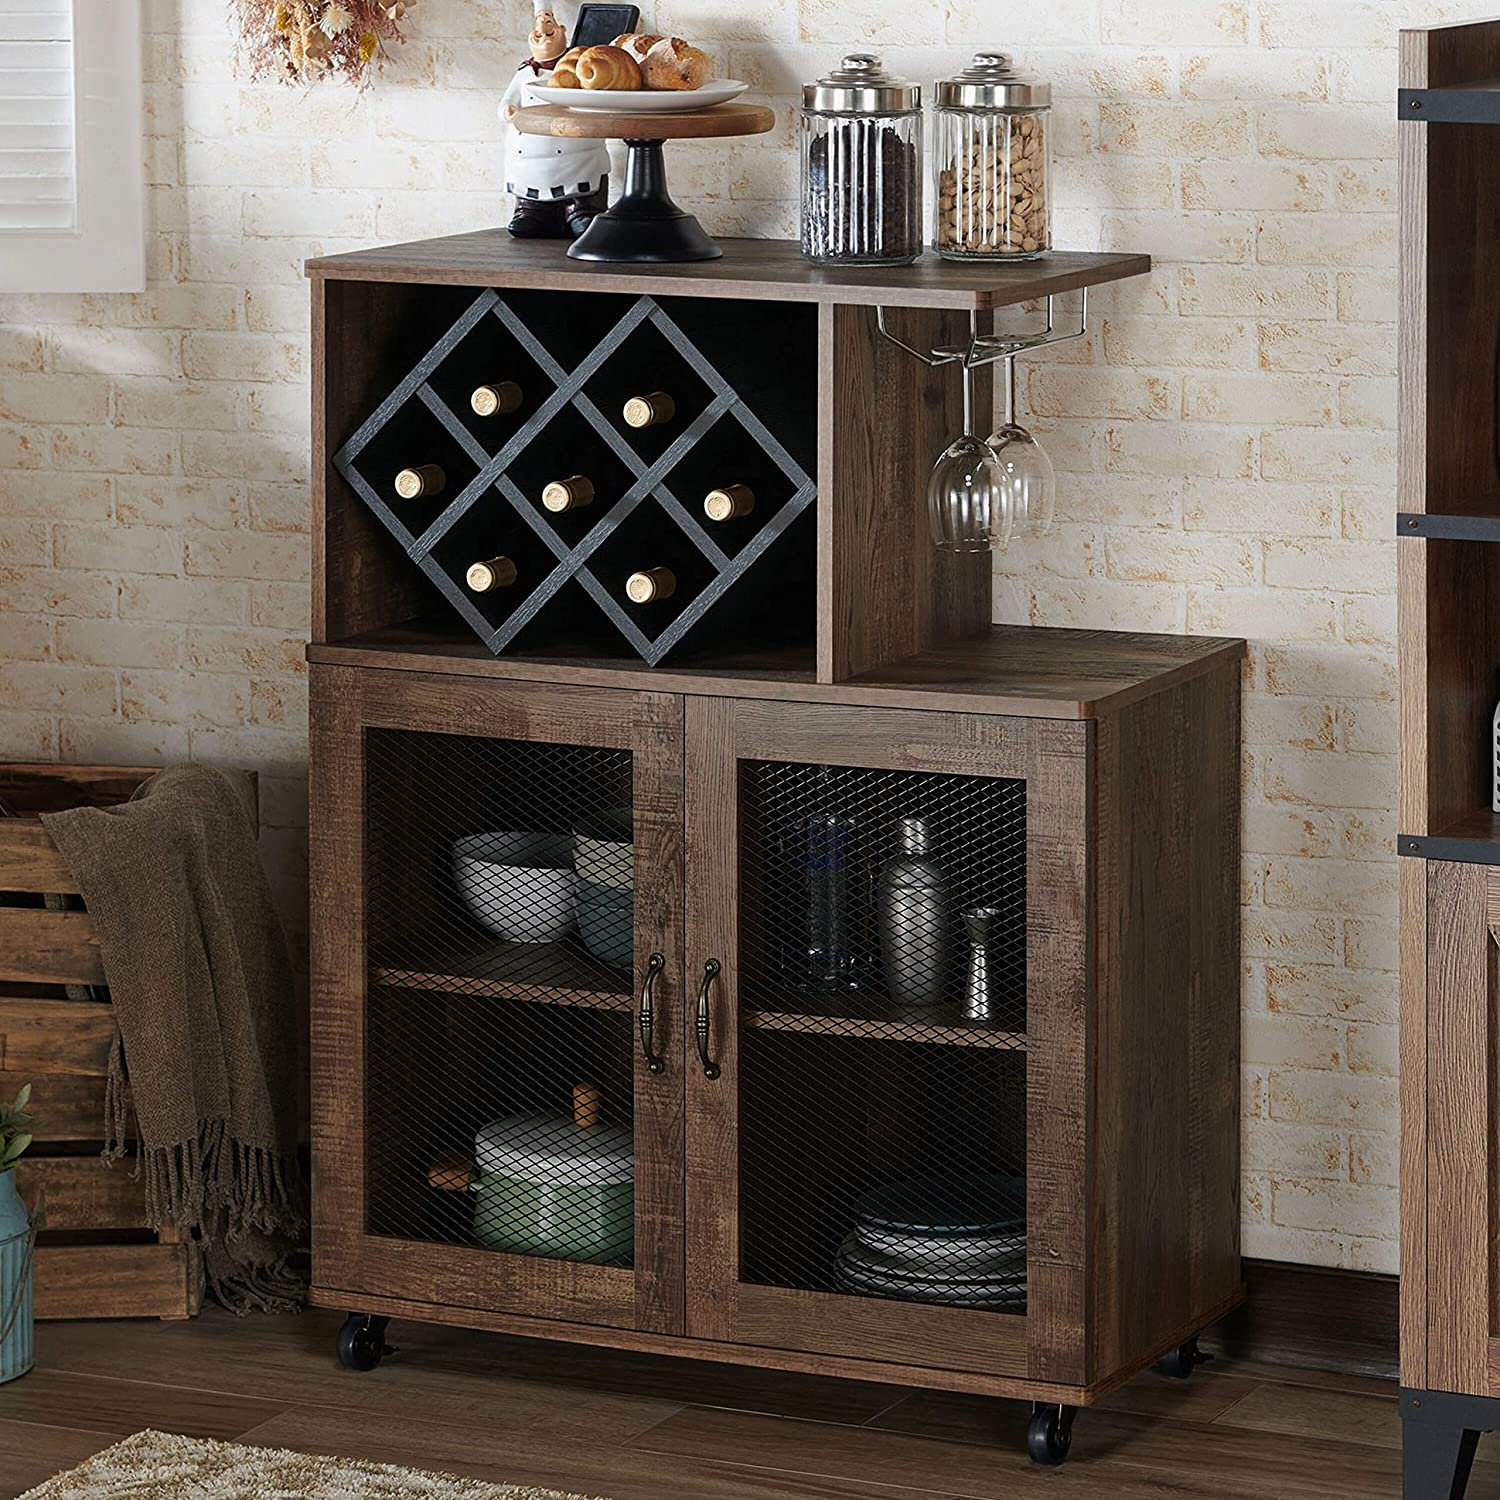 Oak Reclaimed Contemporary Mini- Hardware Includes MDF Modern Casual Brown Bar Bar Cabinets,Bars & Wine Cabinets all products get up to 34% off - www.fishtail.ie